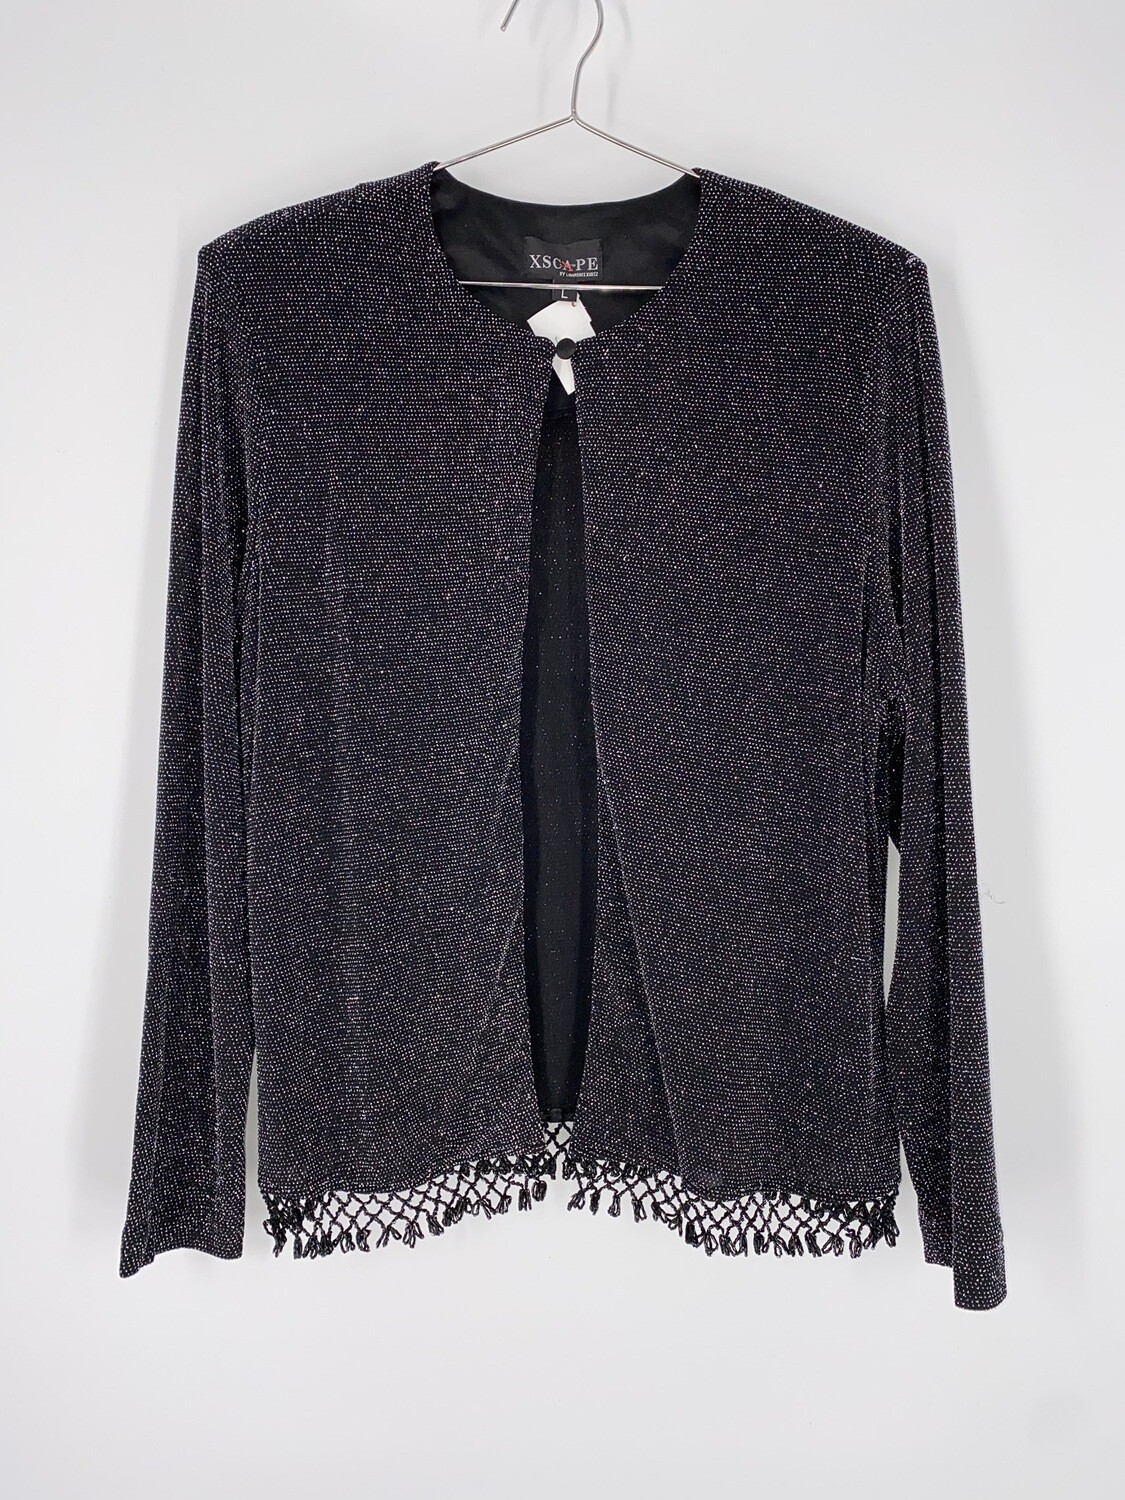 XScape Black And Silver Metallic Beaded Fringe Top Size L